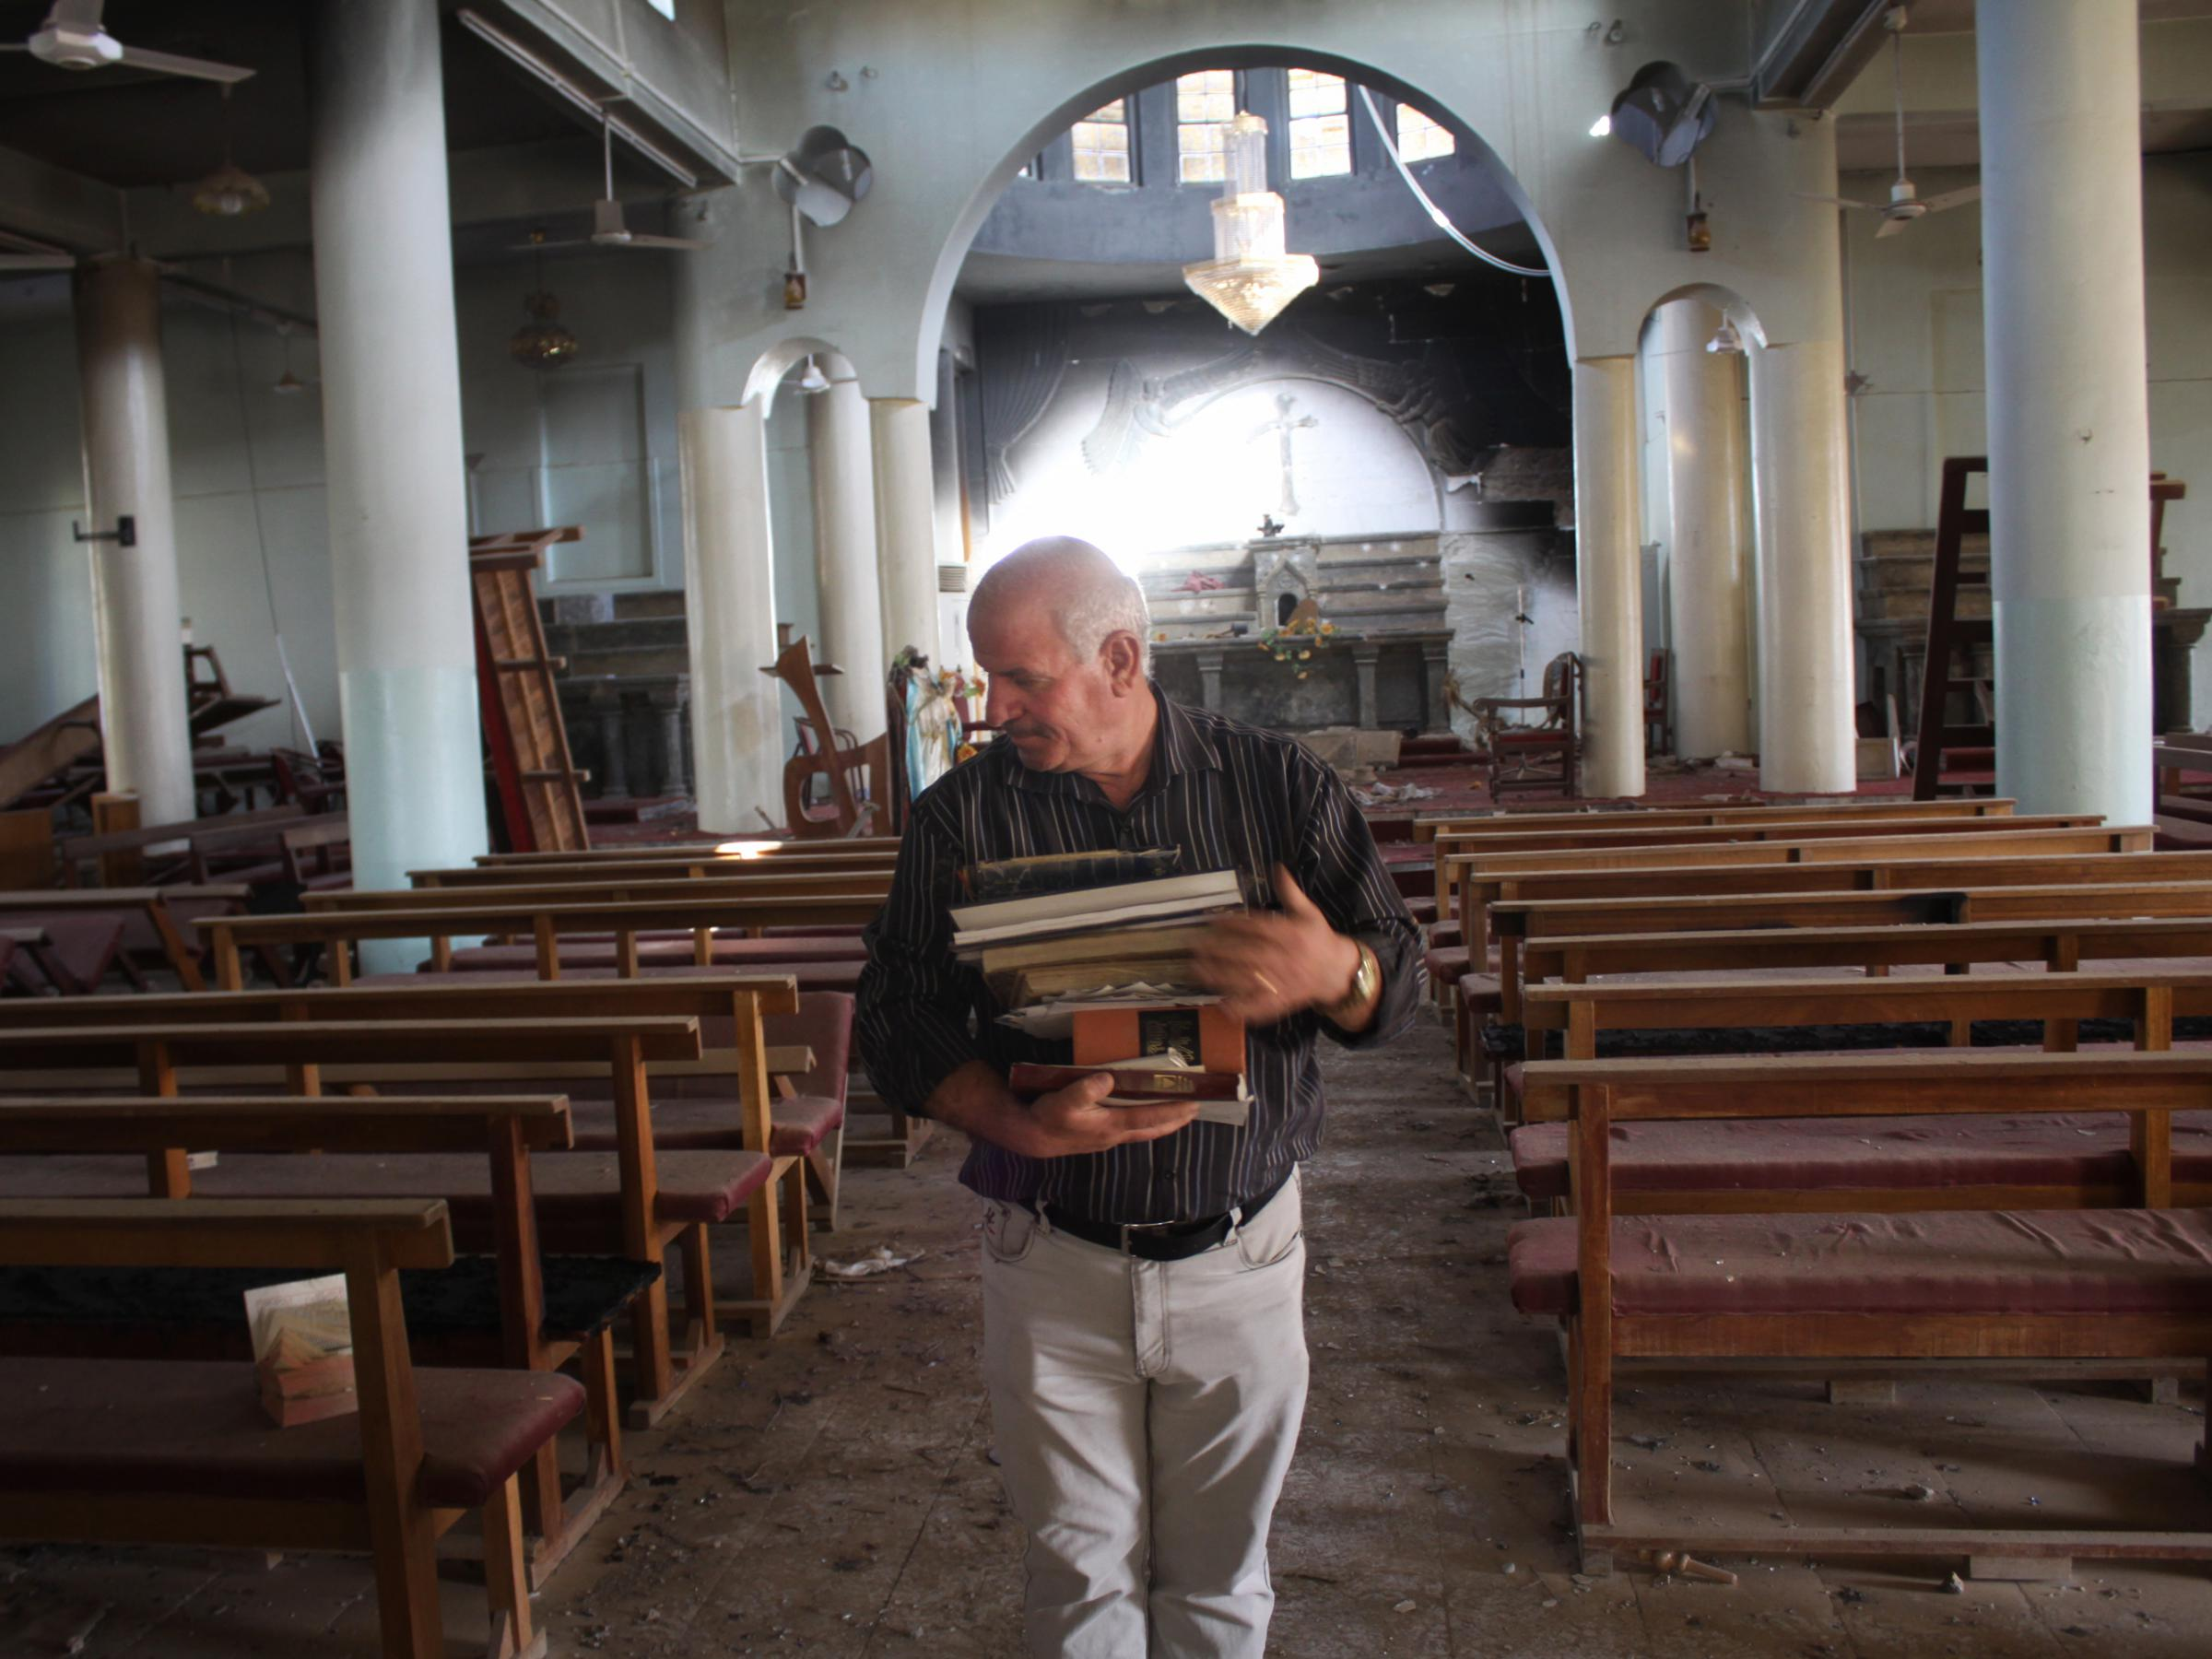 Khalid Yaako Touma, A School Teacher And Deacon In The Village Of  Karamlesh, Collects Religious Books From One Of The Churches In The Village  That ISIS ...